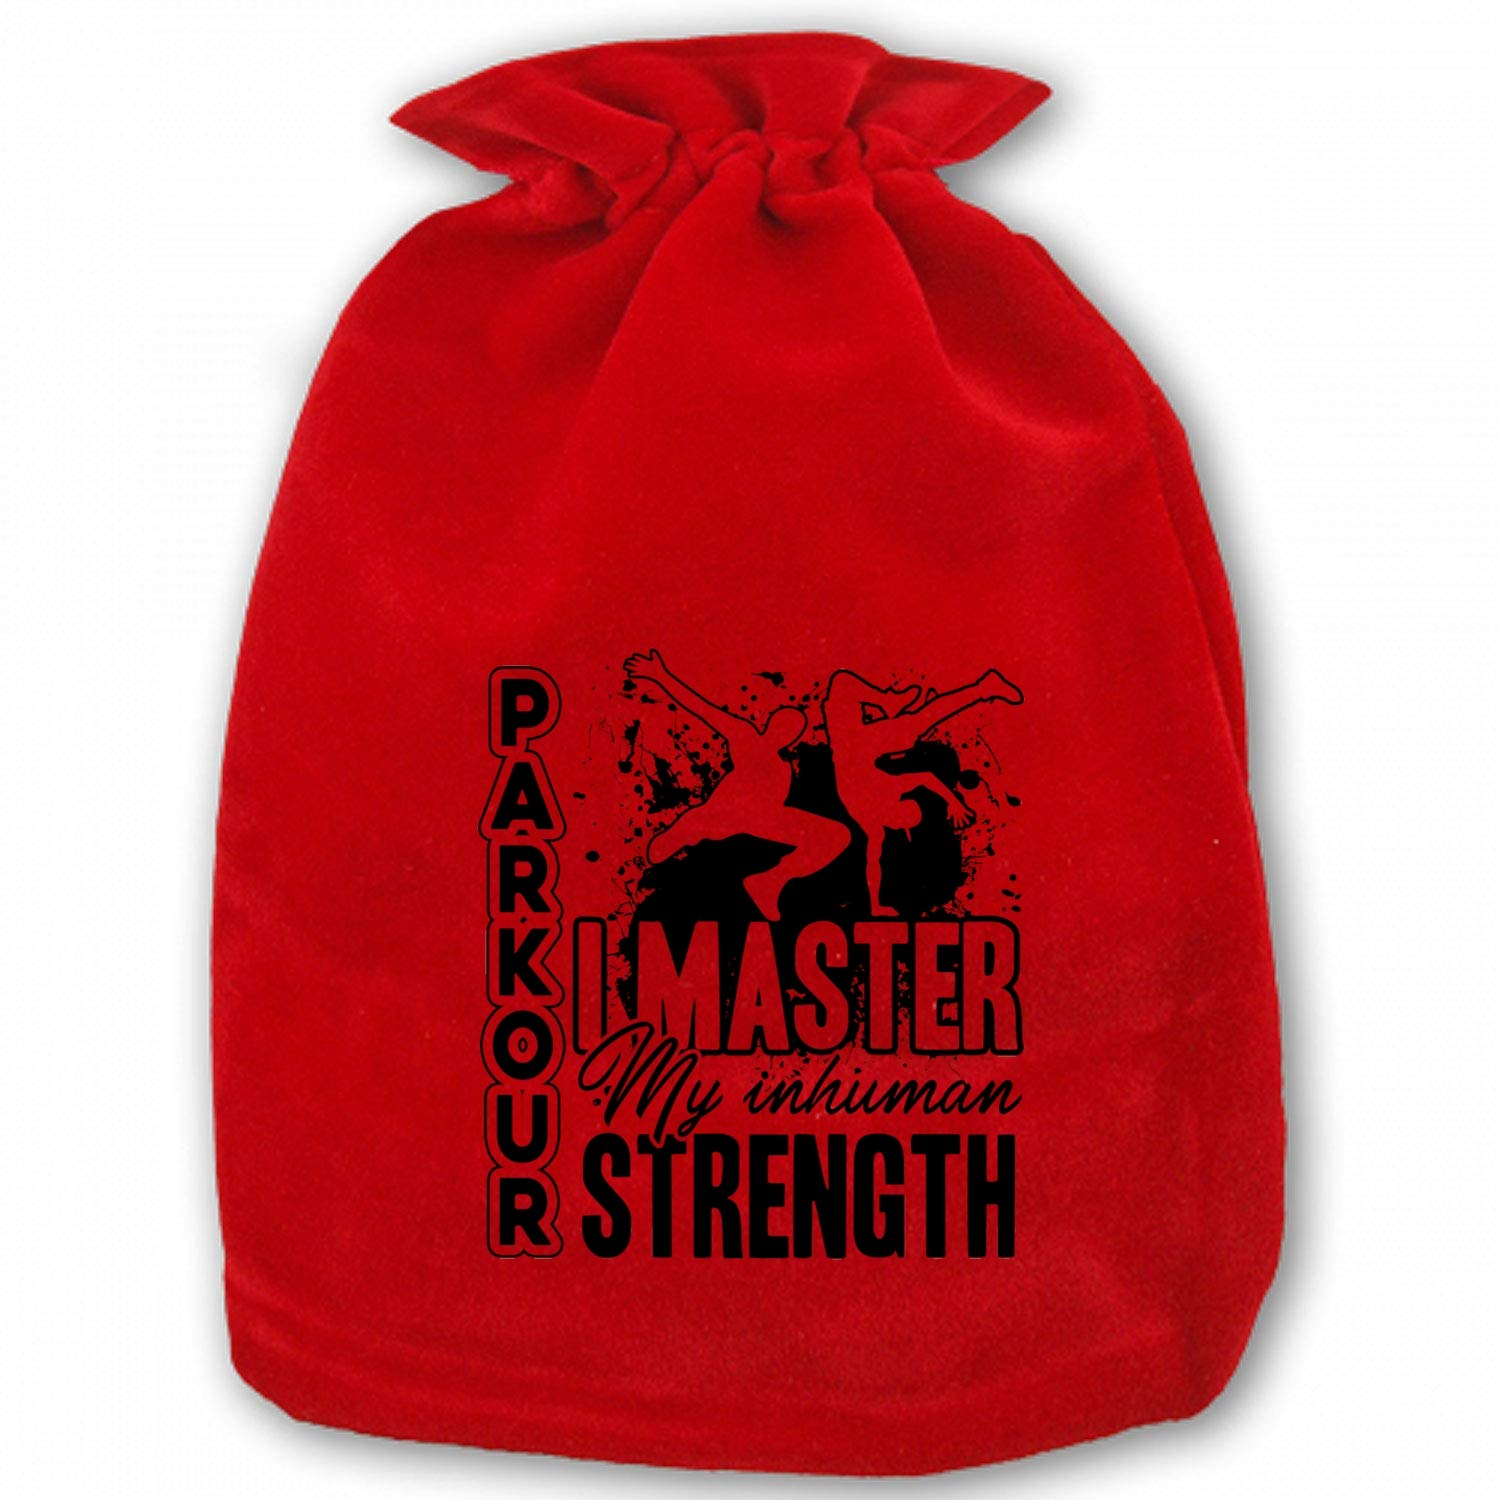 Parkour Master Drawstring Bags for Christmas Party Favors Treats